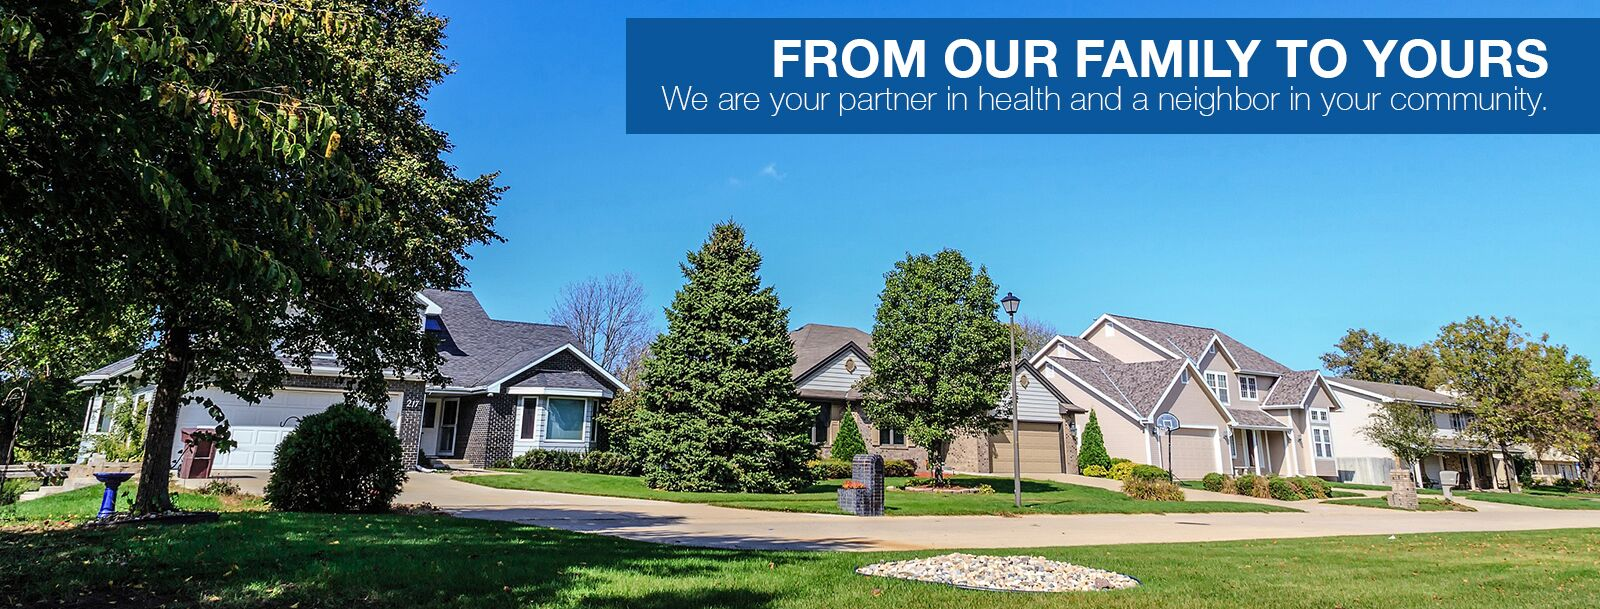 southsiouxcityfamilypractice